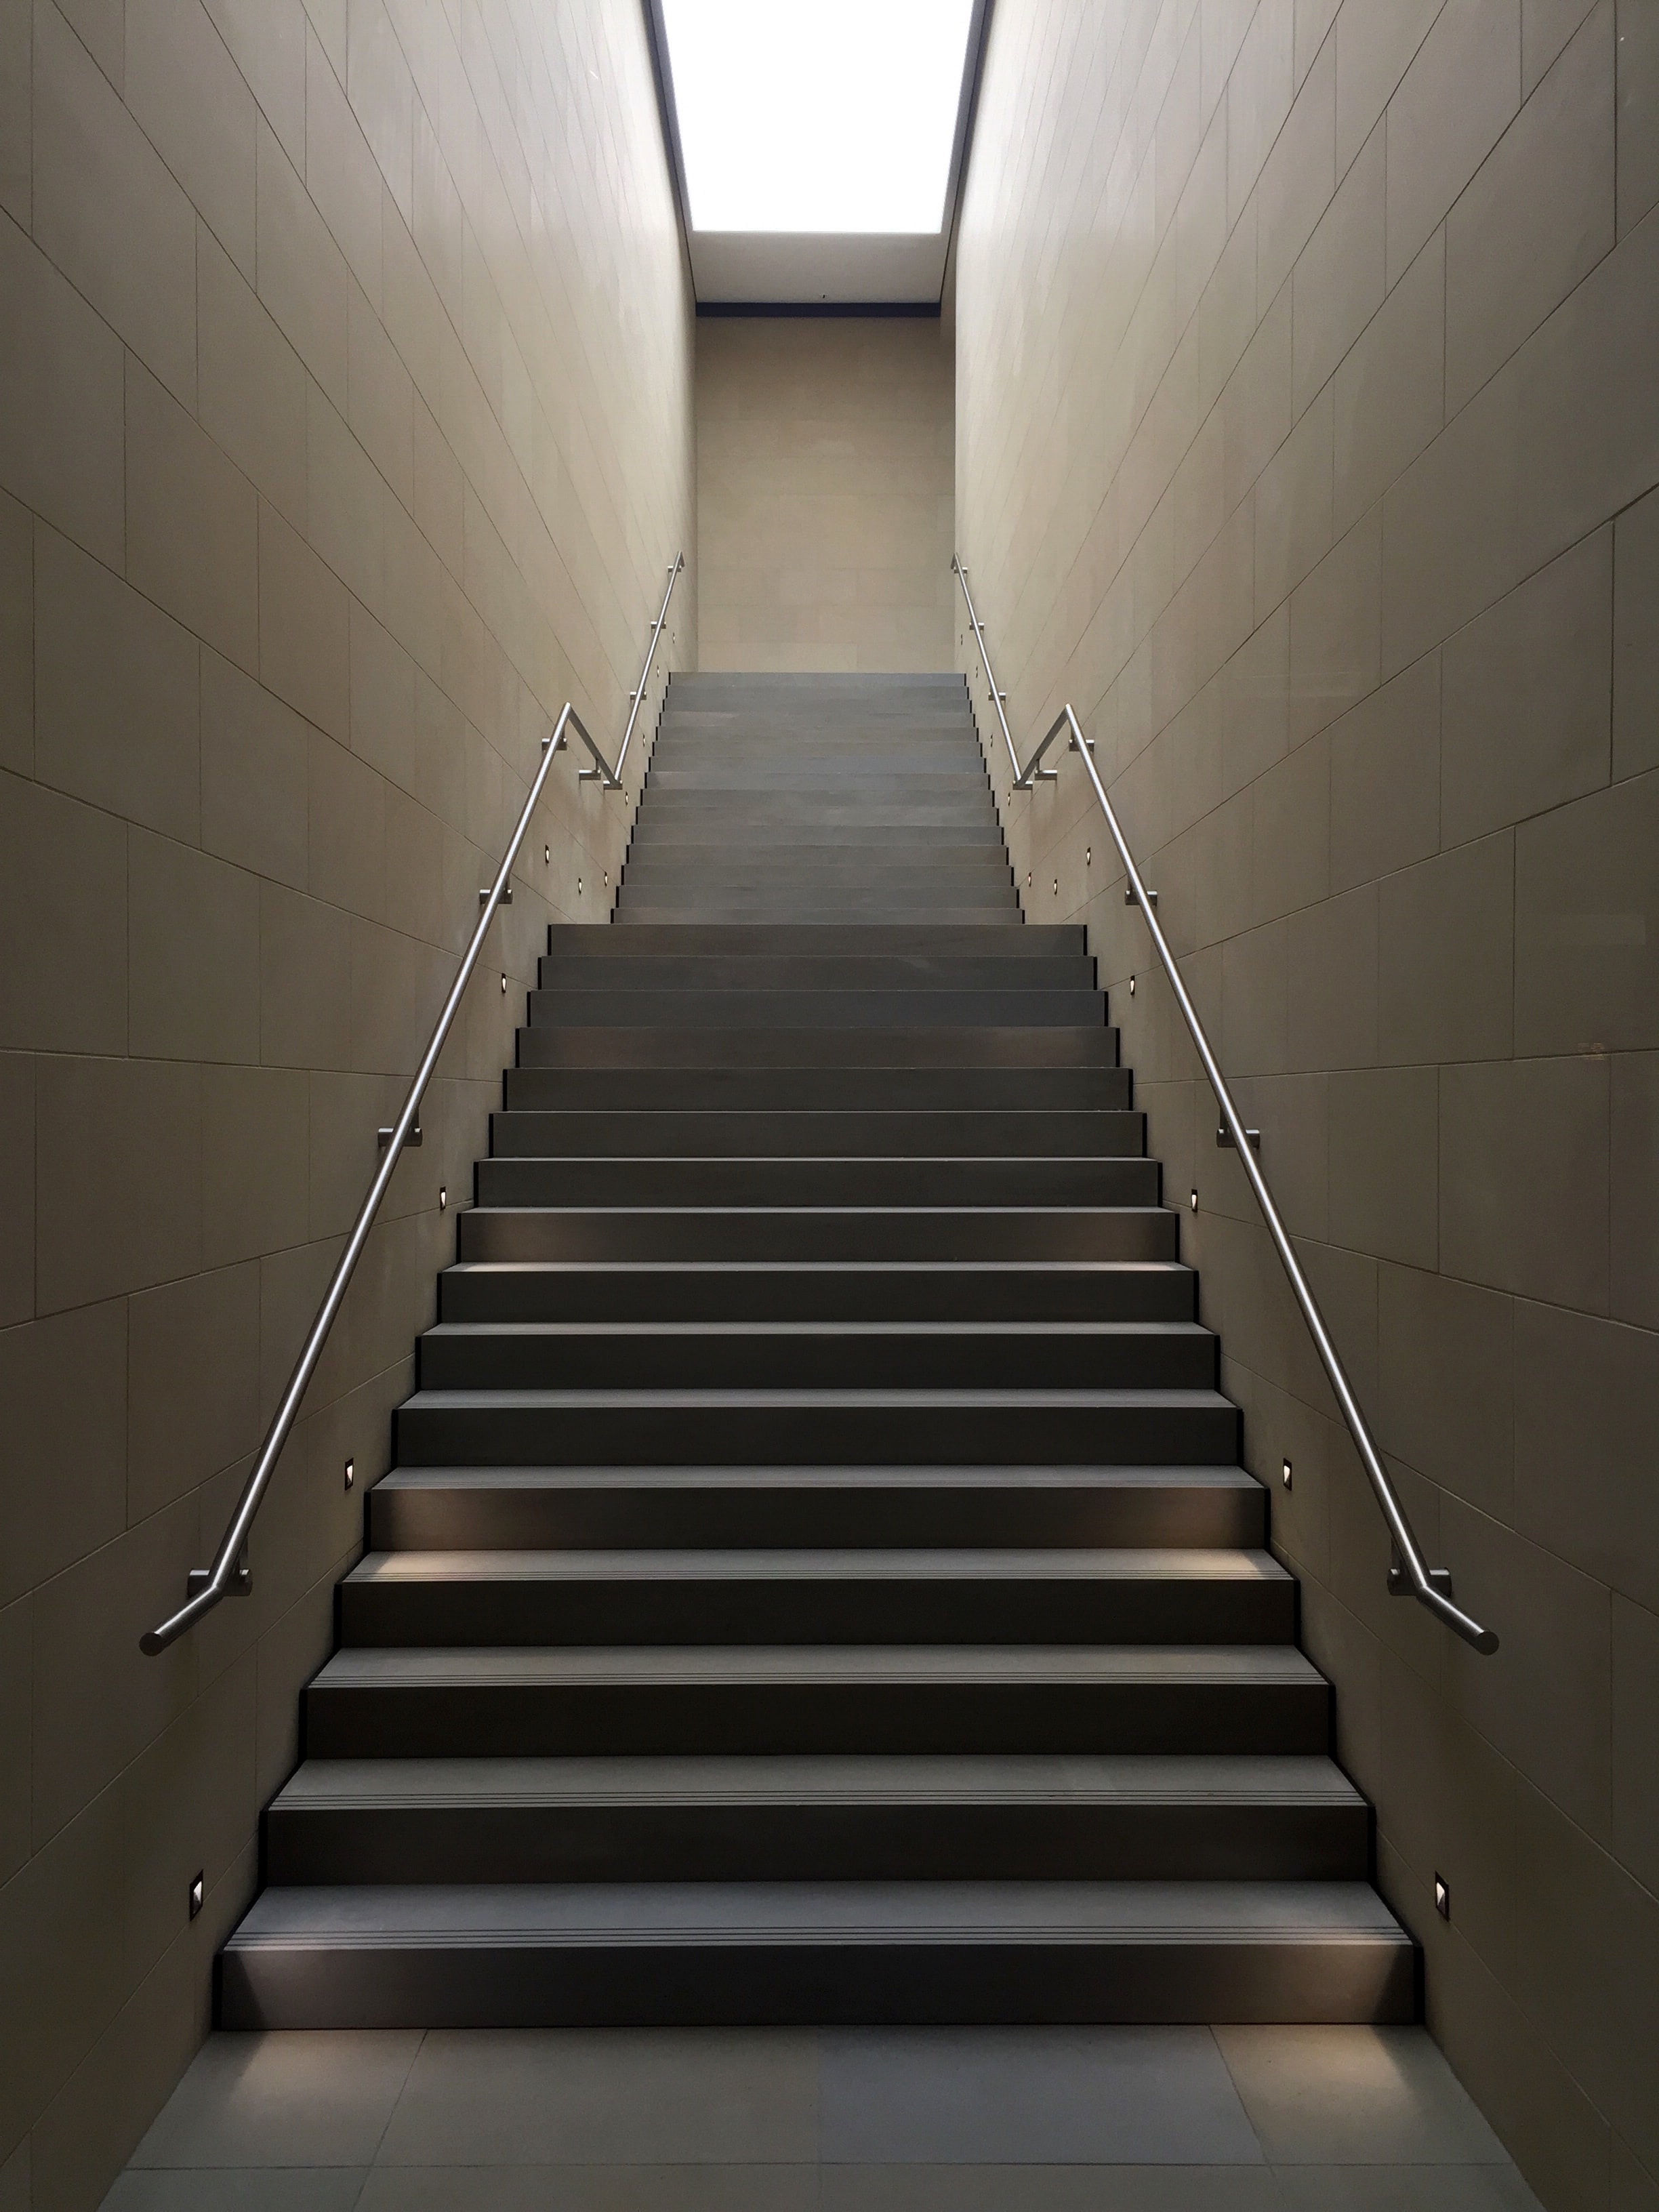 Stone Stair Stairs Stairwell And Staircase Hd Photo By